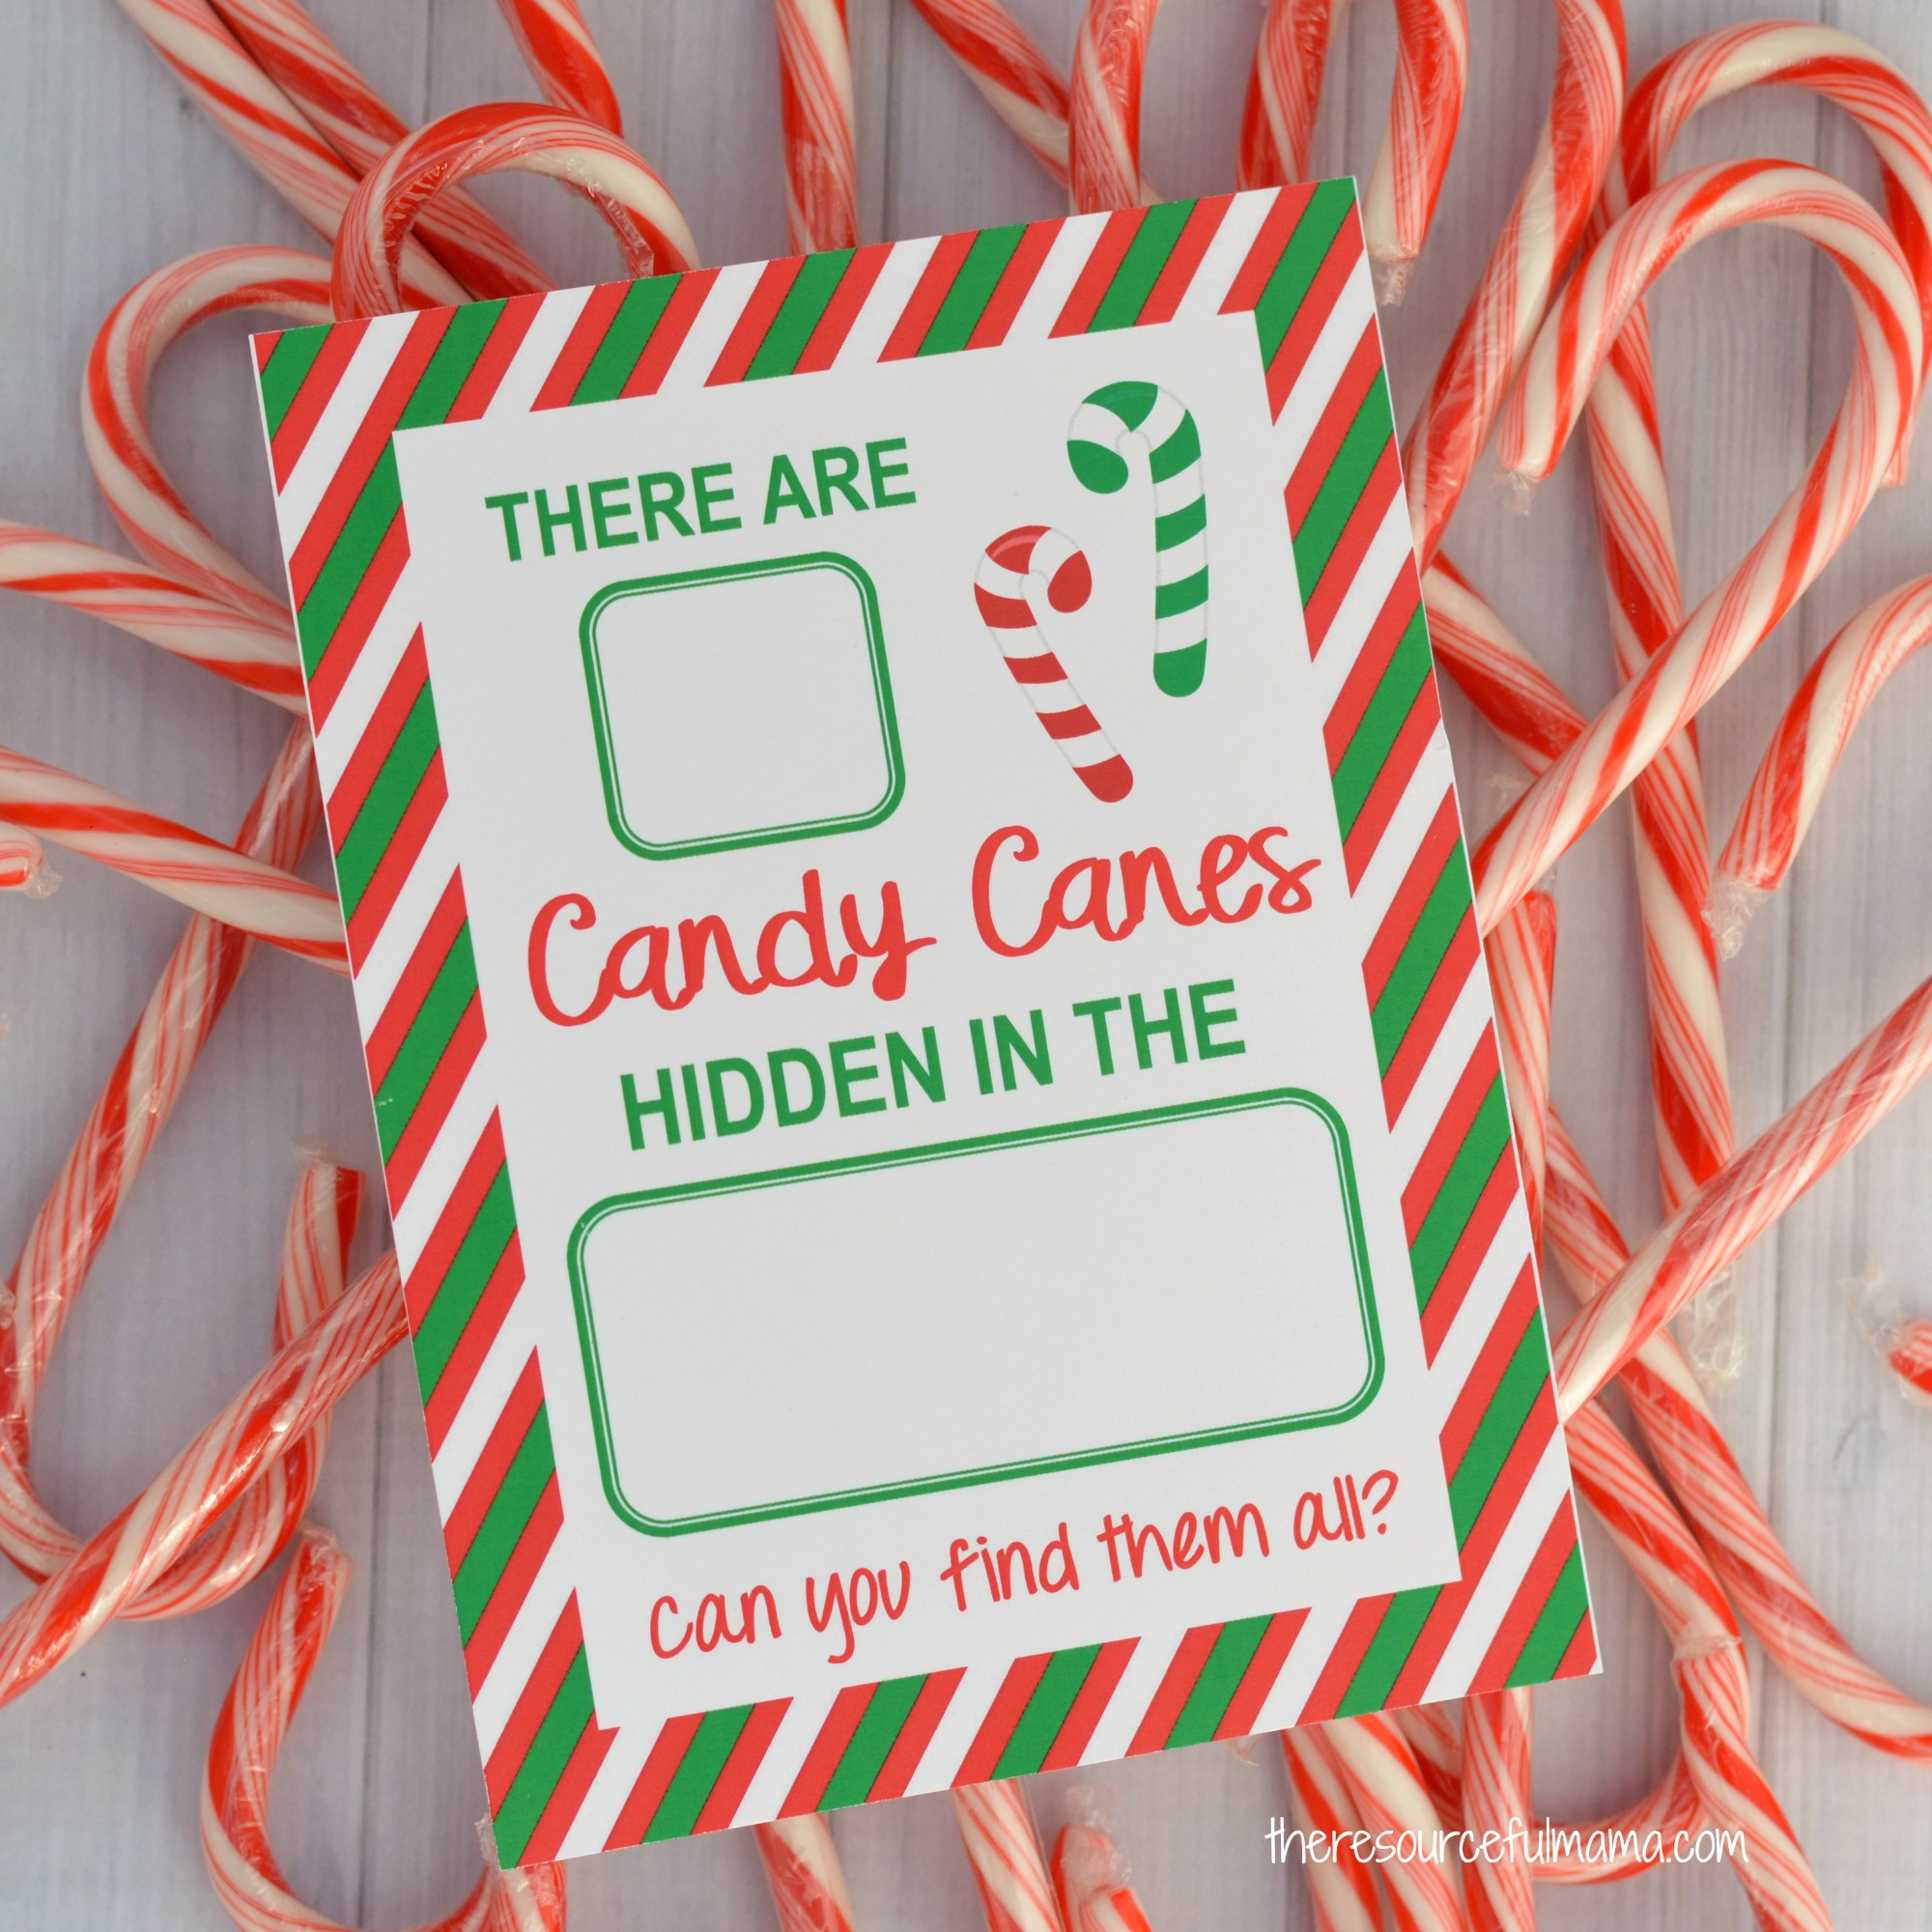 Hide Amp Seek Candy Cane Game Square